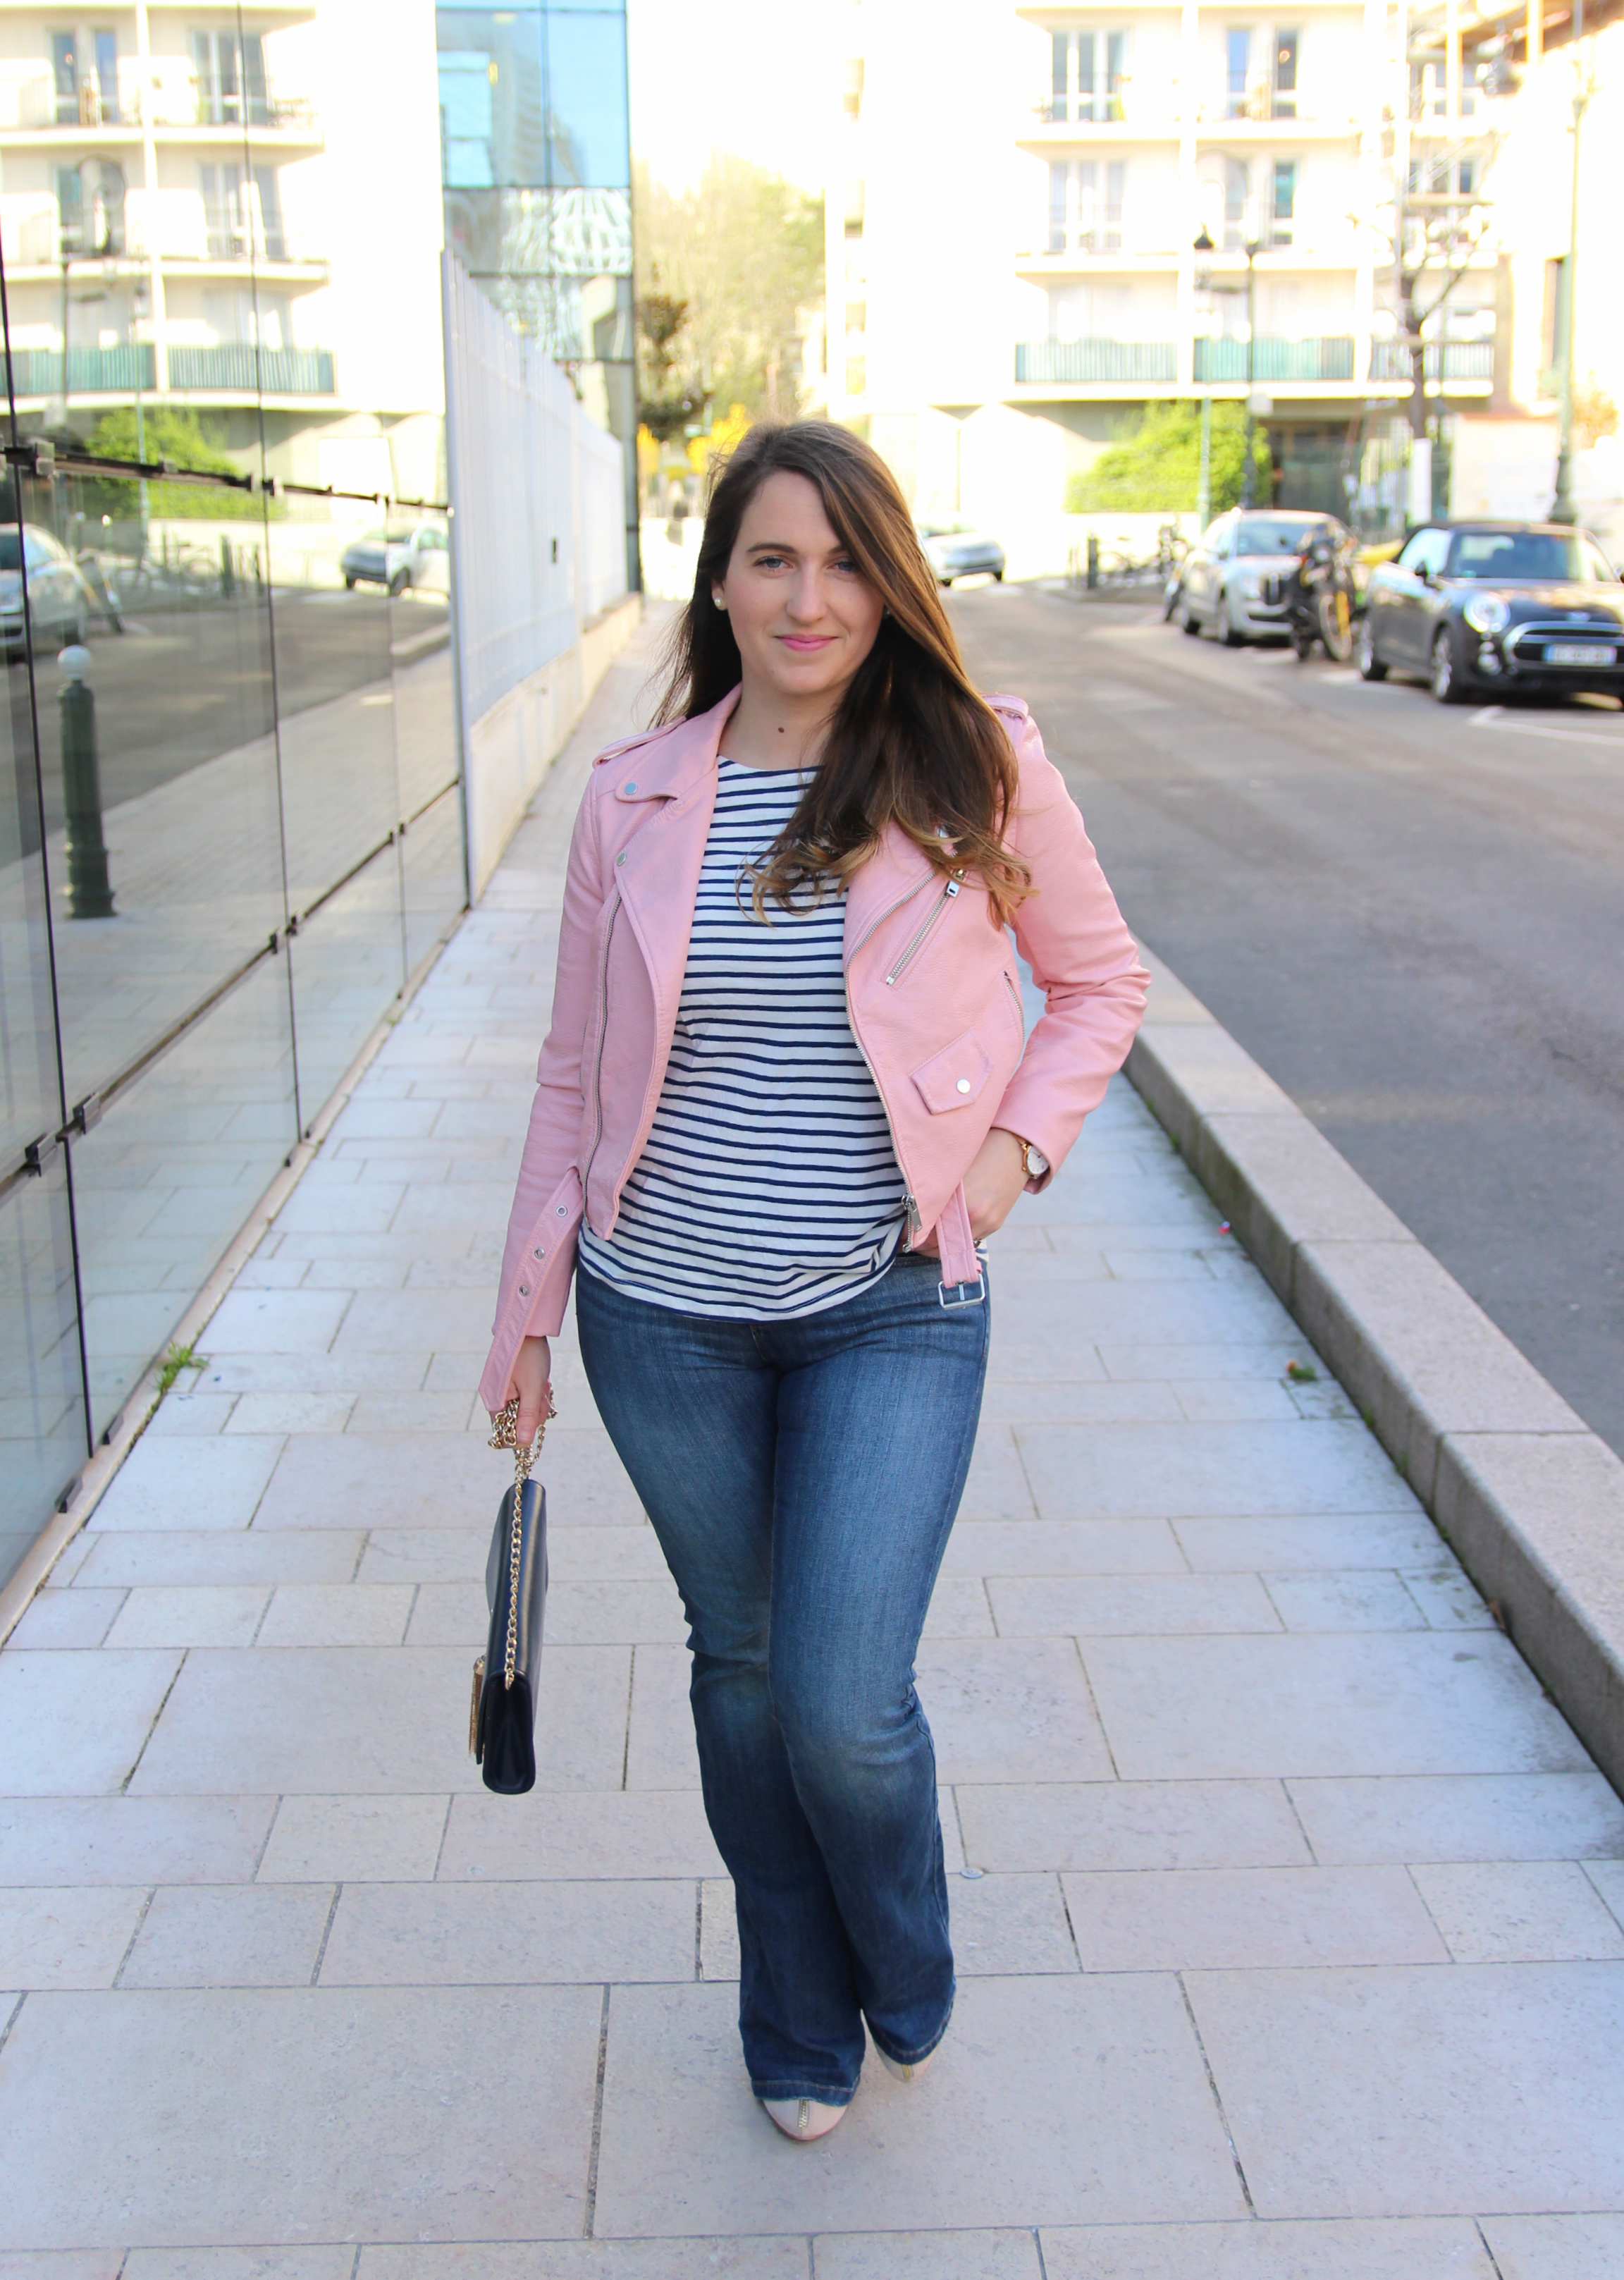 perfecto-rose-zara-marinniere-denim-influencer-fashion-ottd-look-seralynepointcom-paris-IMG_6996